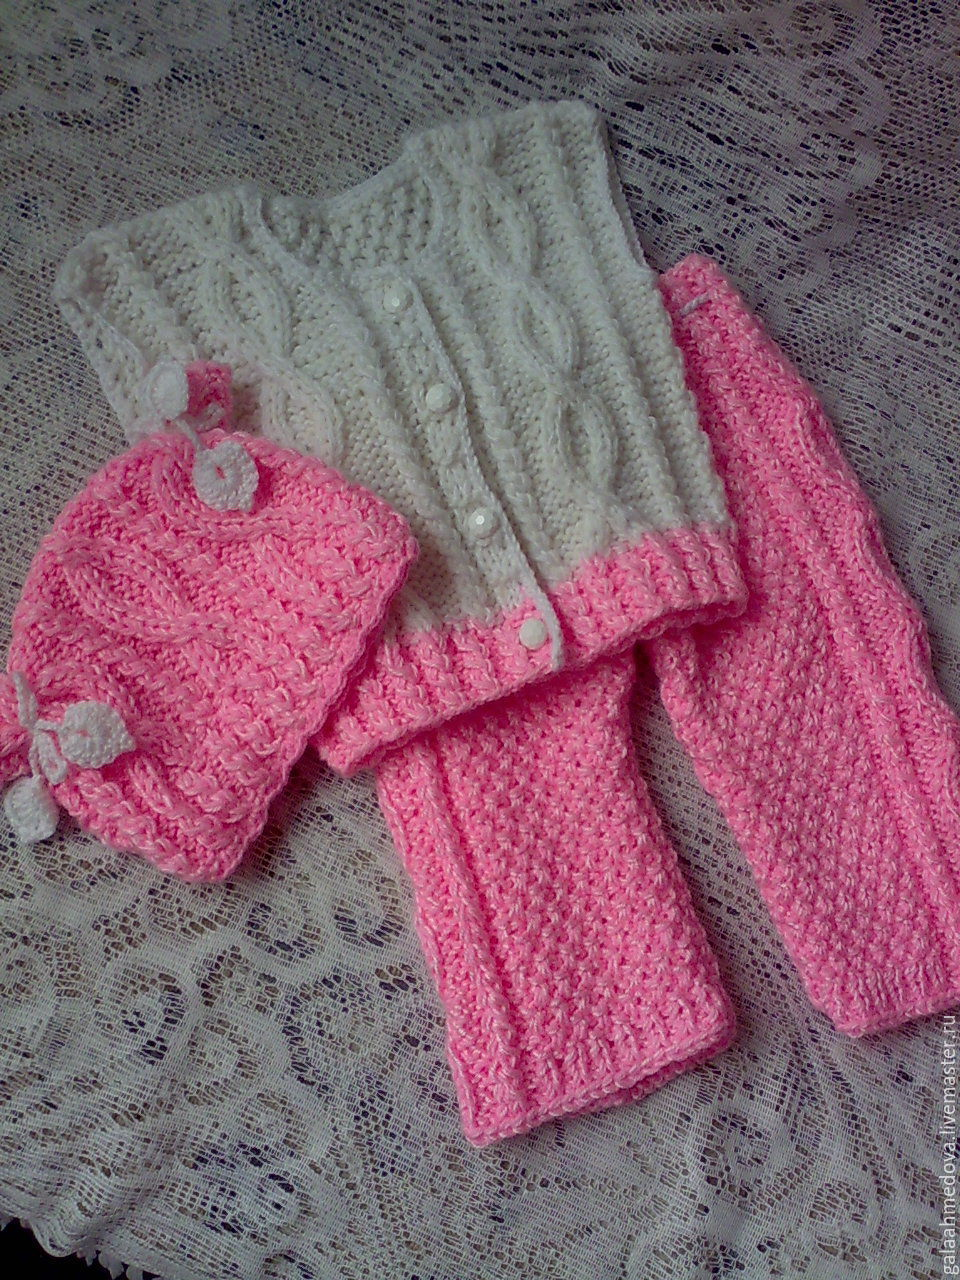 Children's costume for a year, children set, knitted suit, suit for baby, clothing for children, hand-job, a smart suit, child set, to be discharged,knitting for children, warm costume,